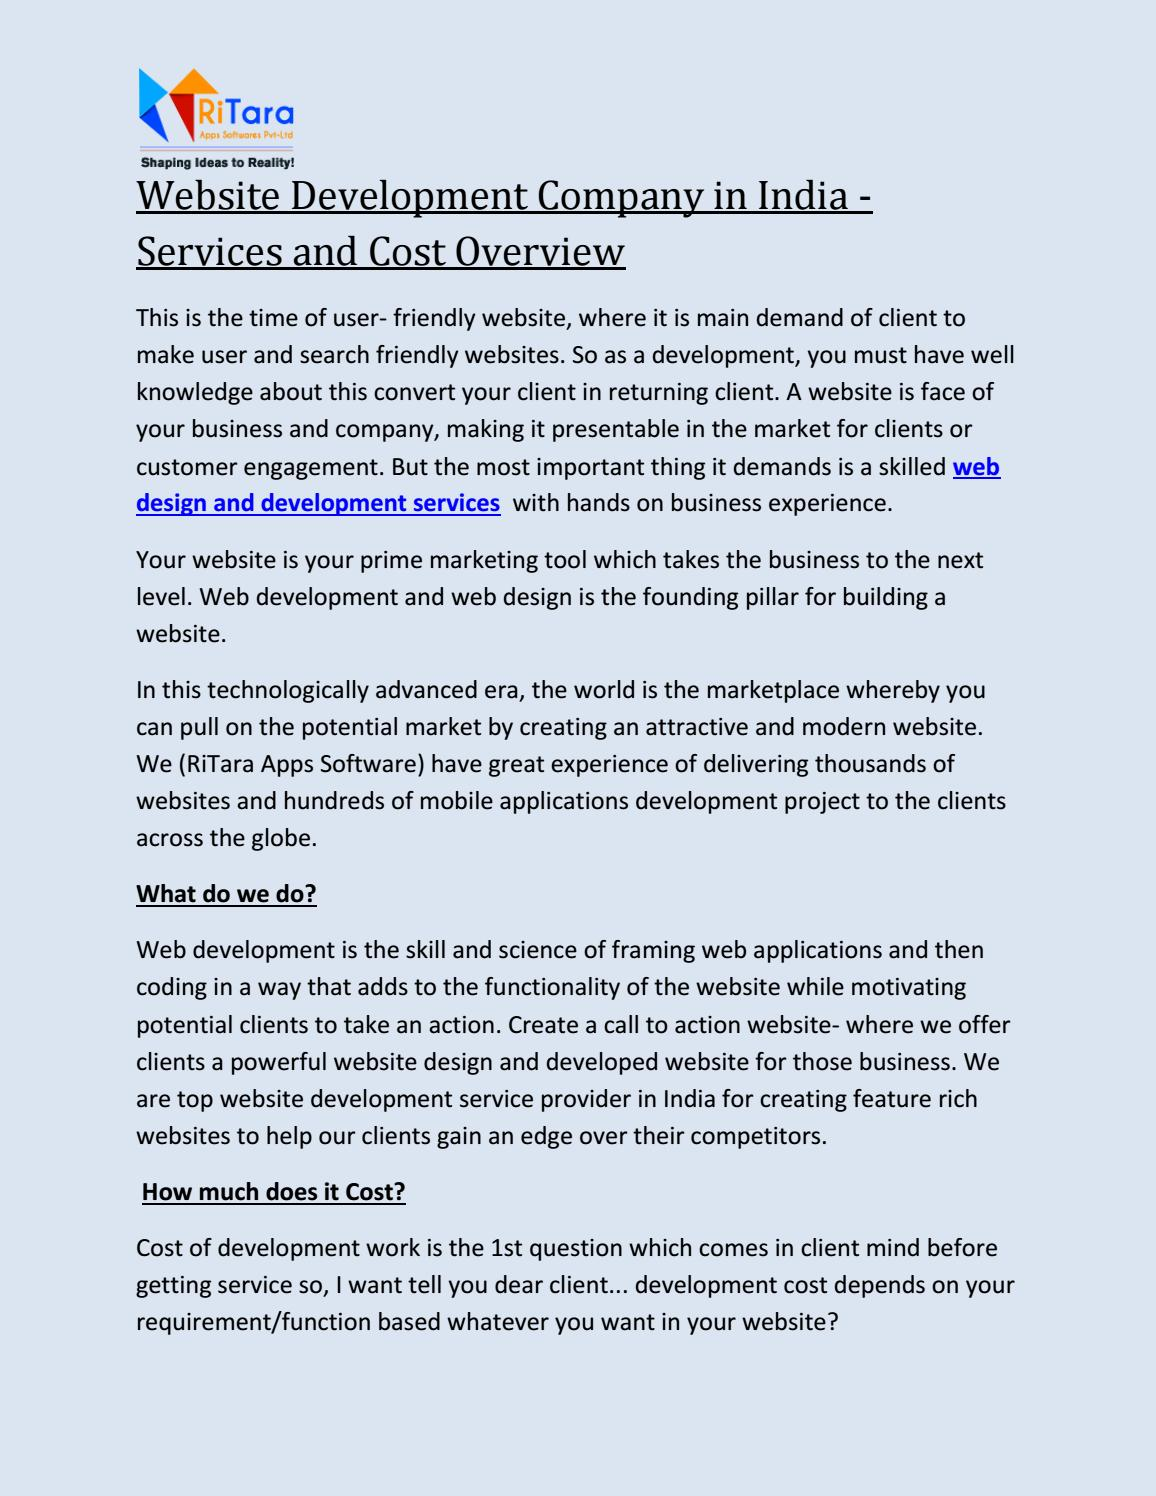 Website Development Services Cost Overview Ritara Apps By Ritaraapps Issuu